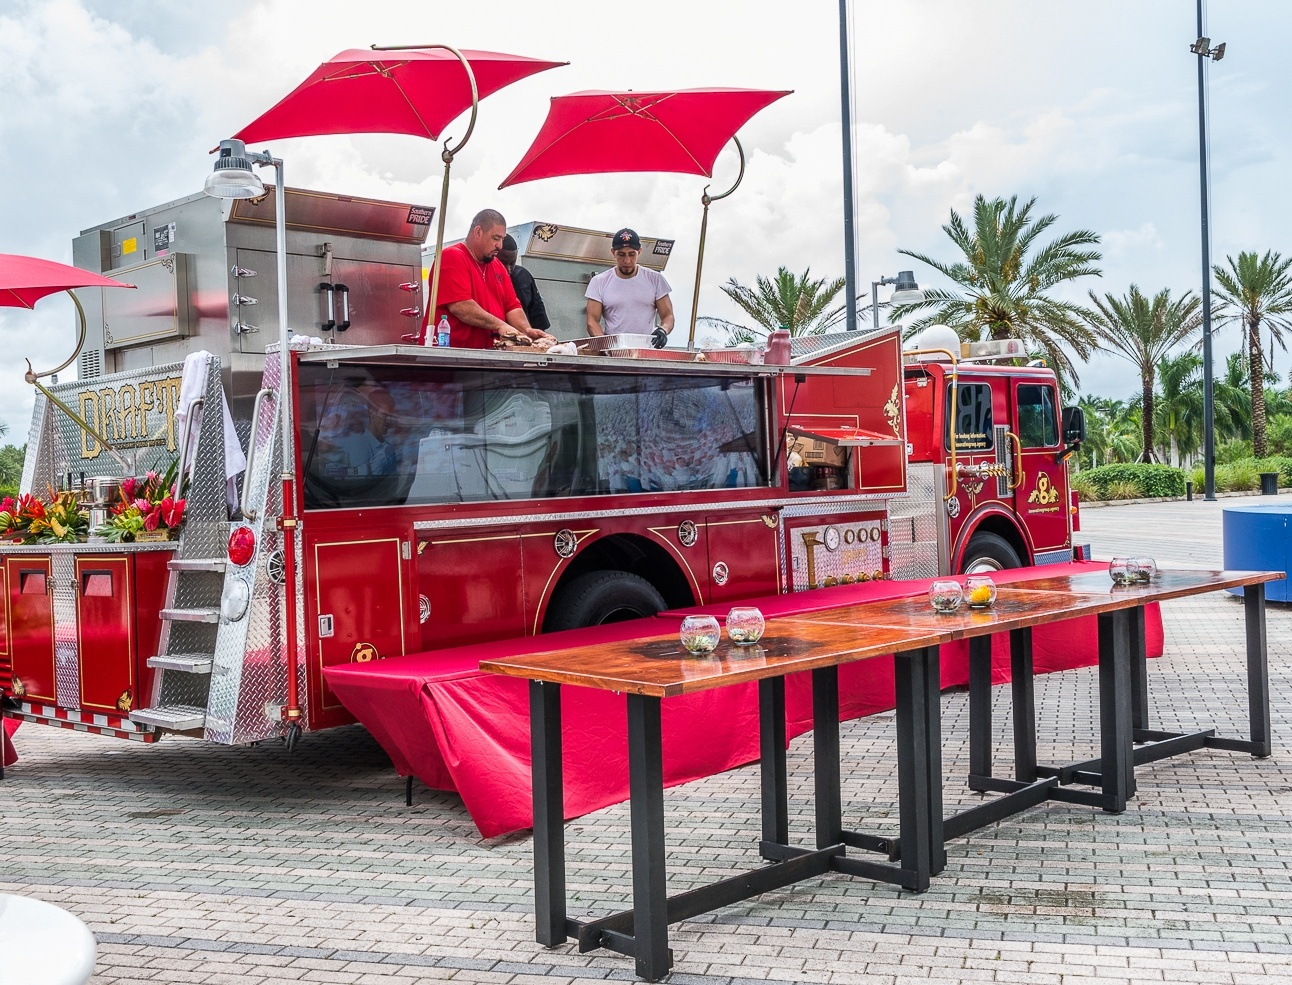 DRAFT Mobile Culinary Firetruck for Events by Innovative Group